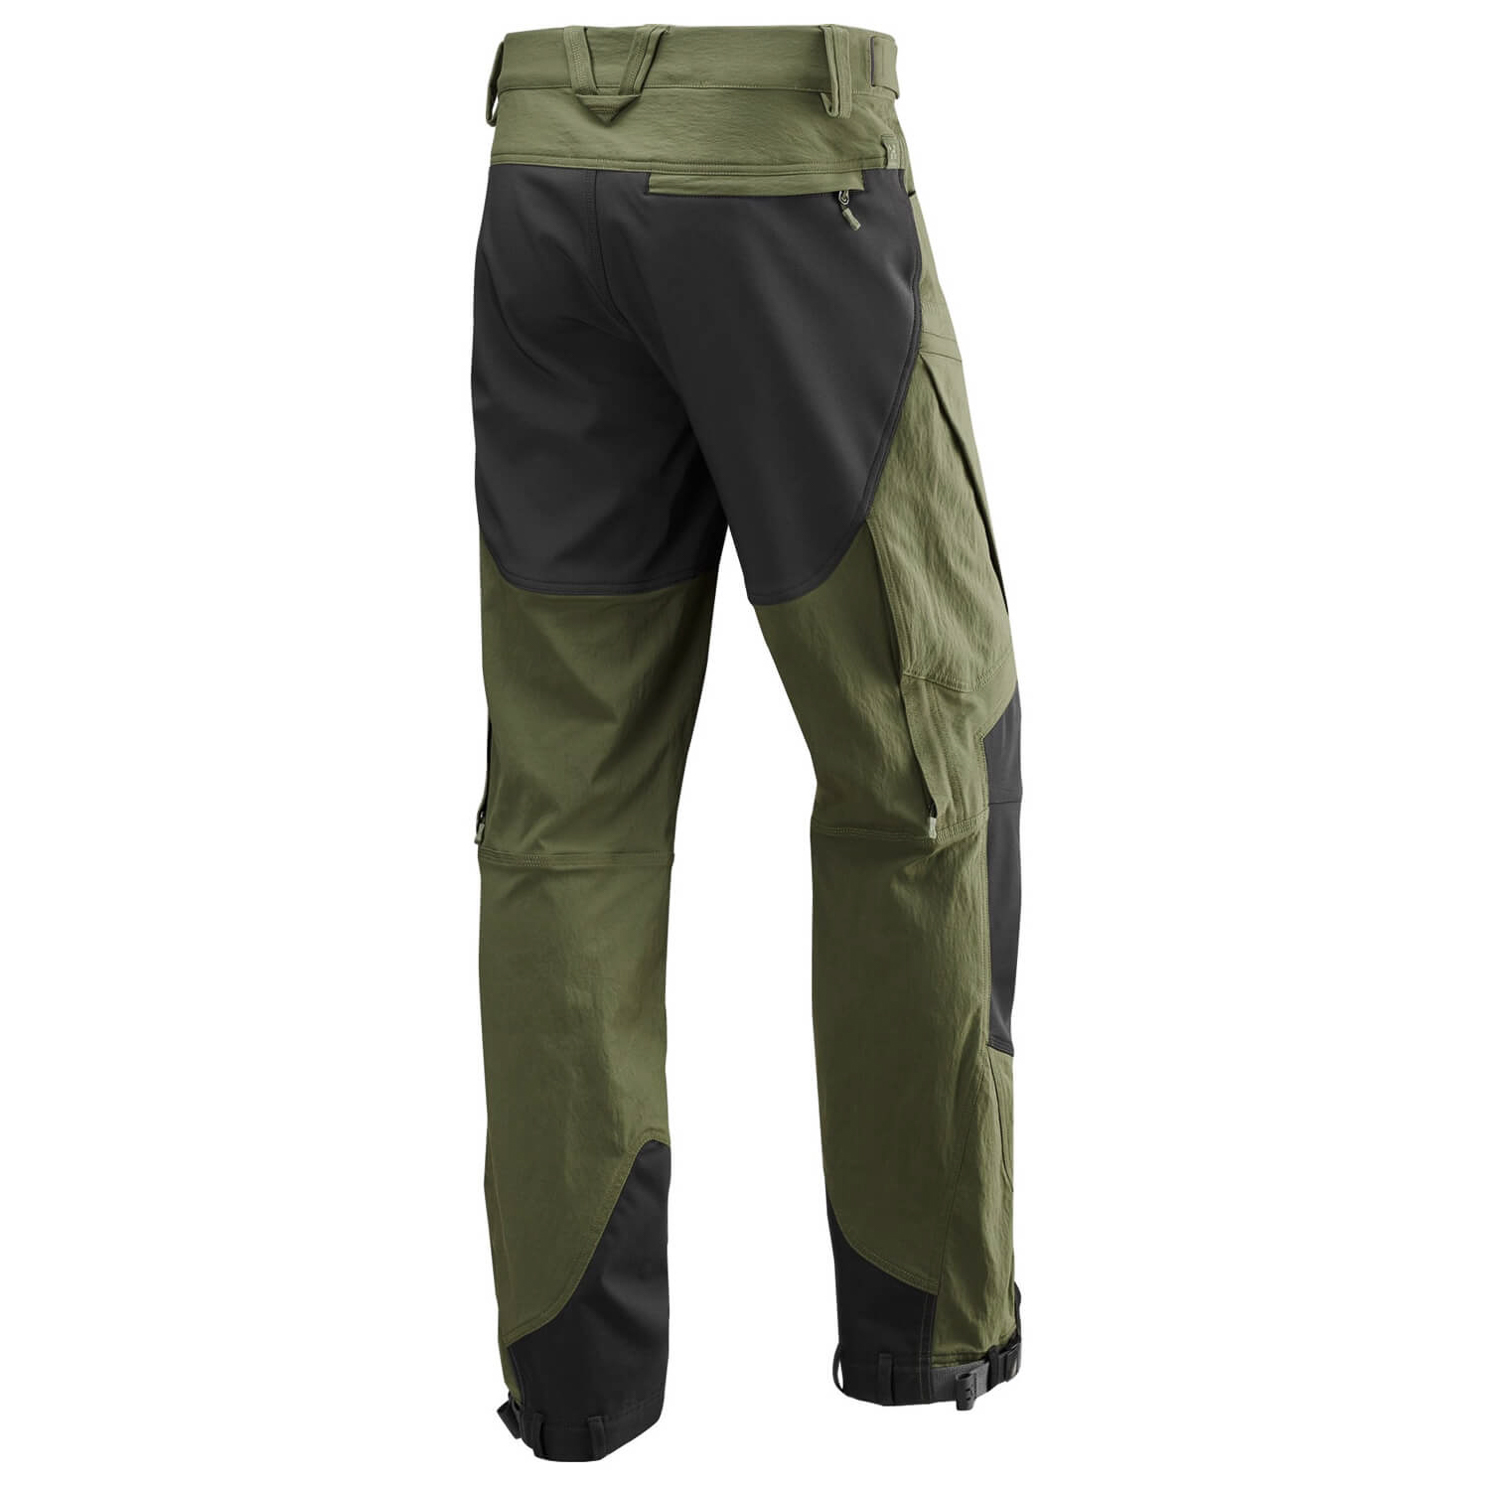 Haglöfs Rugged Ii Mountain Pant Softs Pants